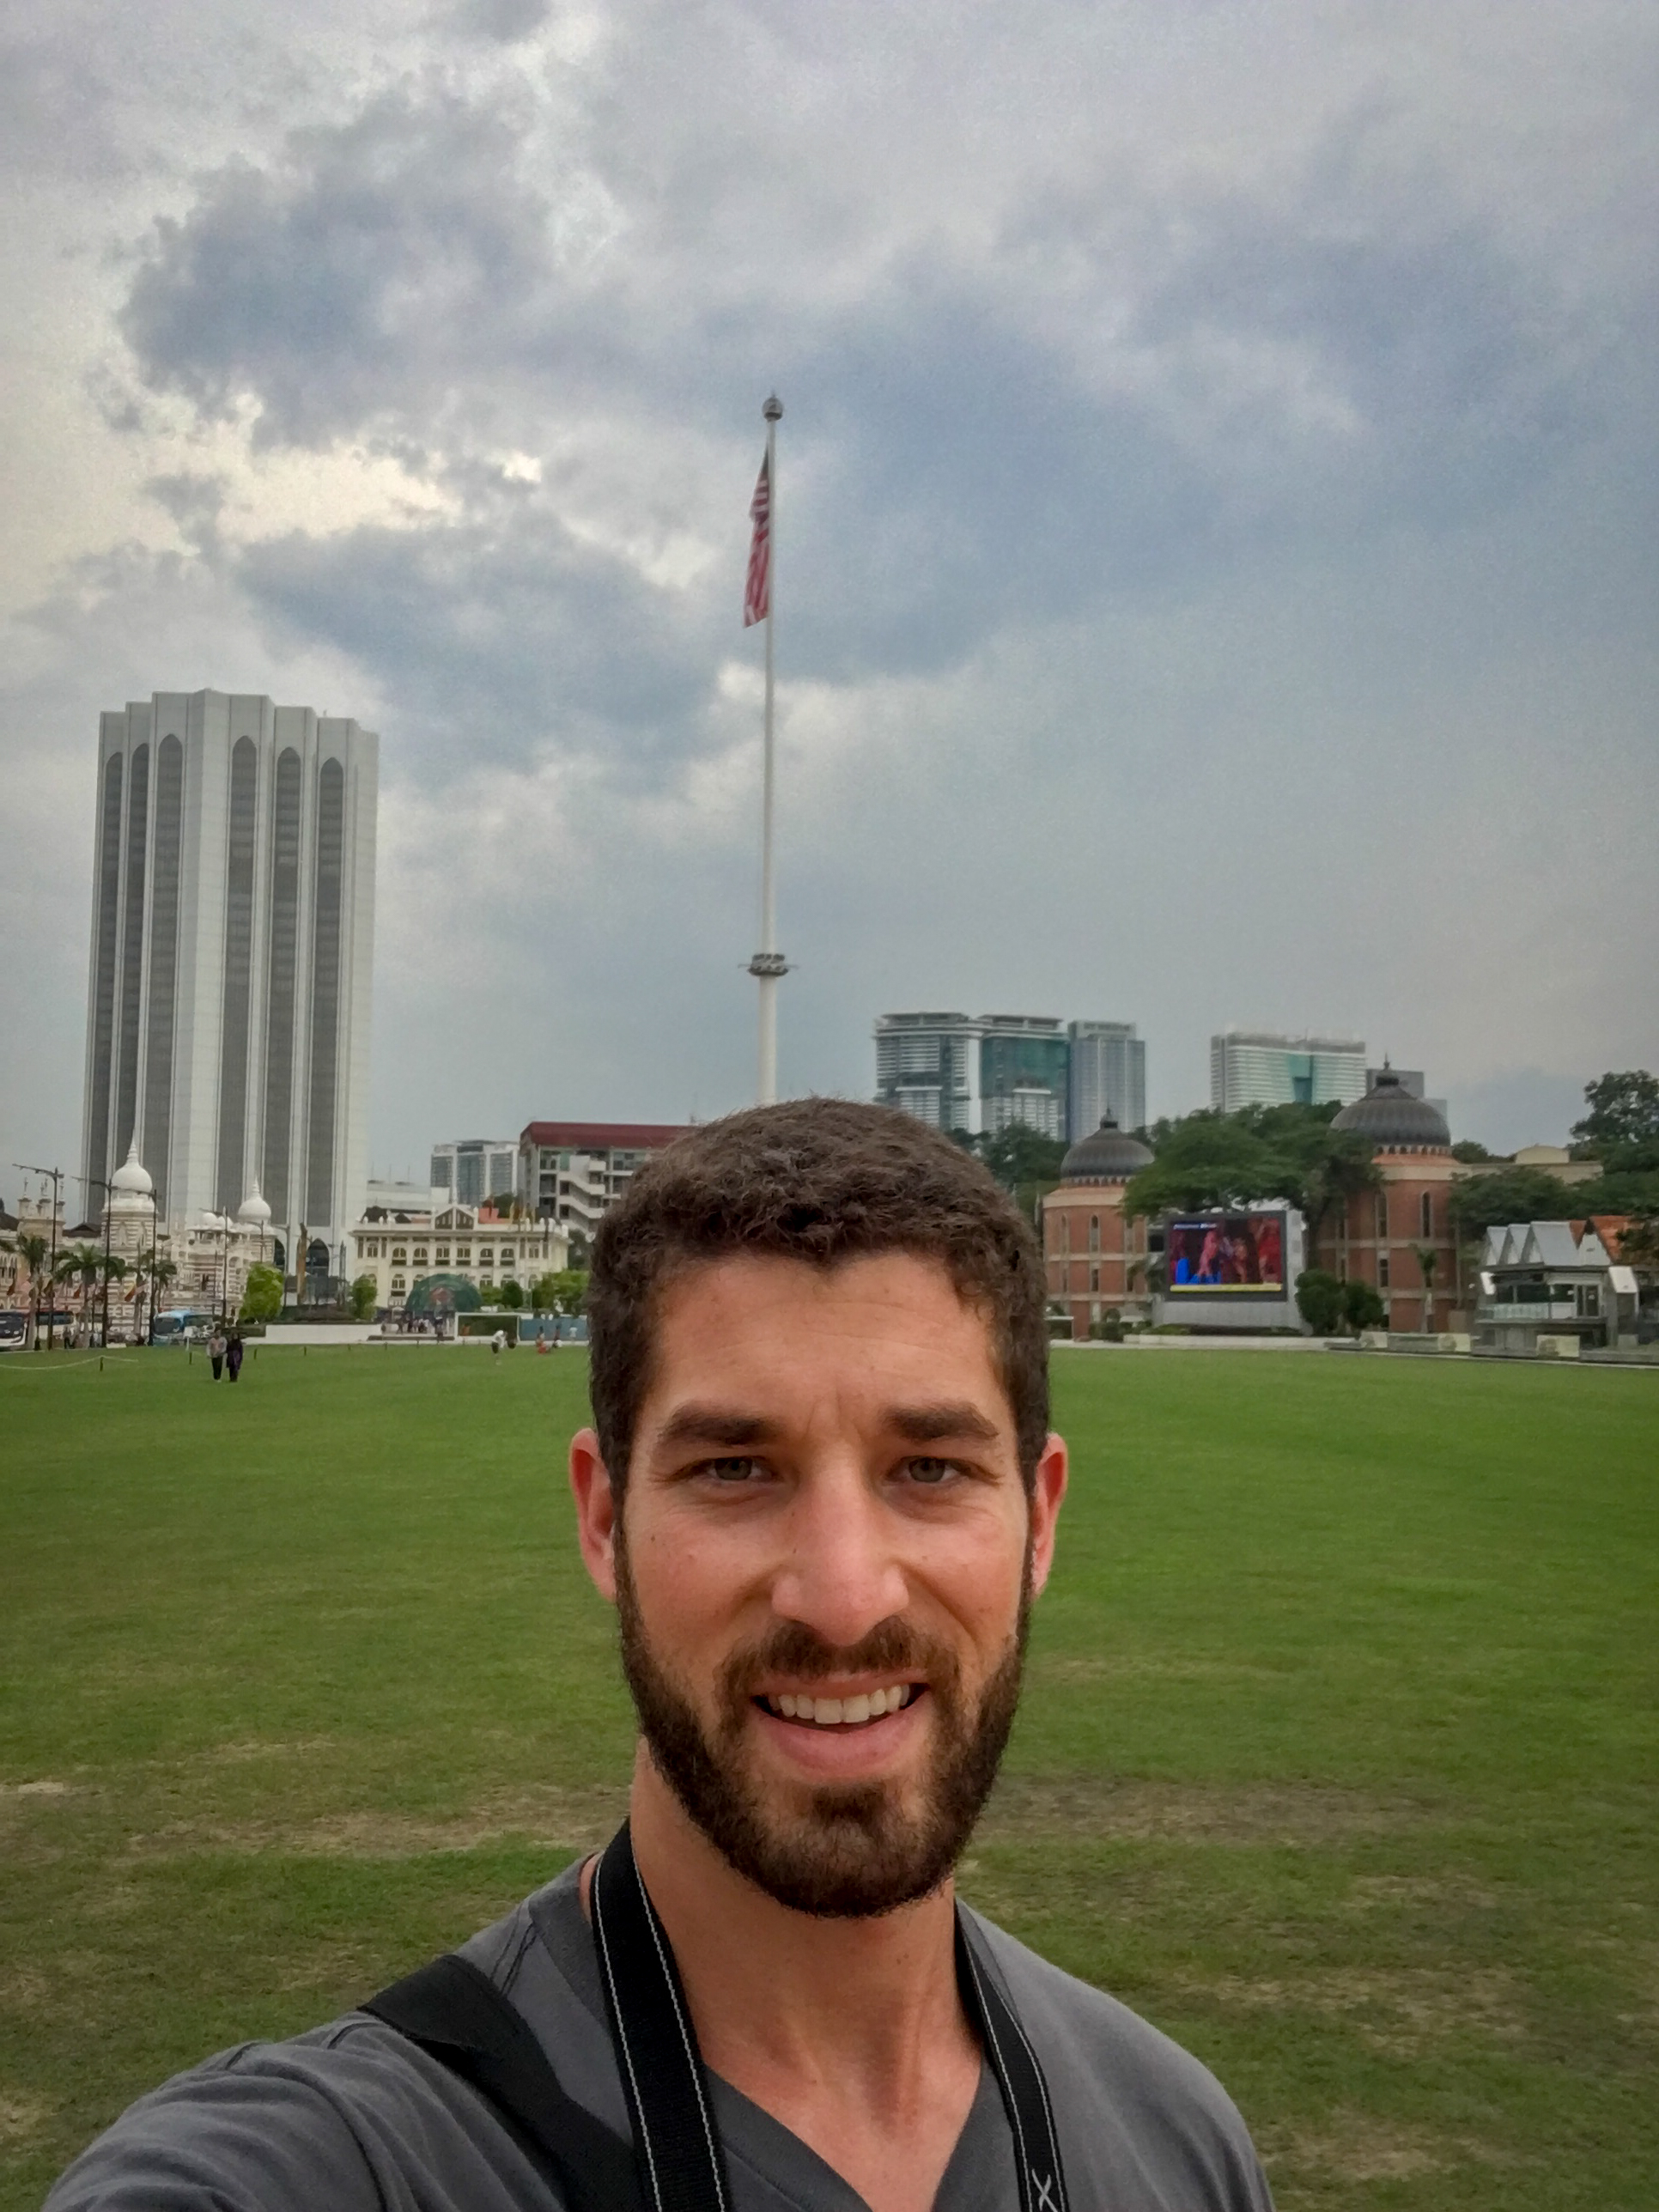 """Merdeka Square, or """"Independence Square"""", and the flagpole behind me where the Union Jack was lowered and Malaysian Flag was raised on midnight of August 30th / 31st, 1957. It is one of the tallest flagpoles in the world, standing at 312 feet."""